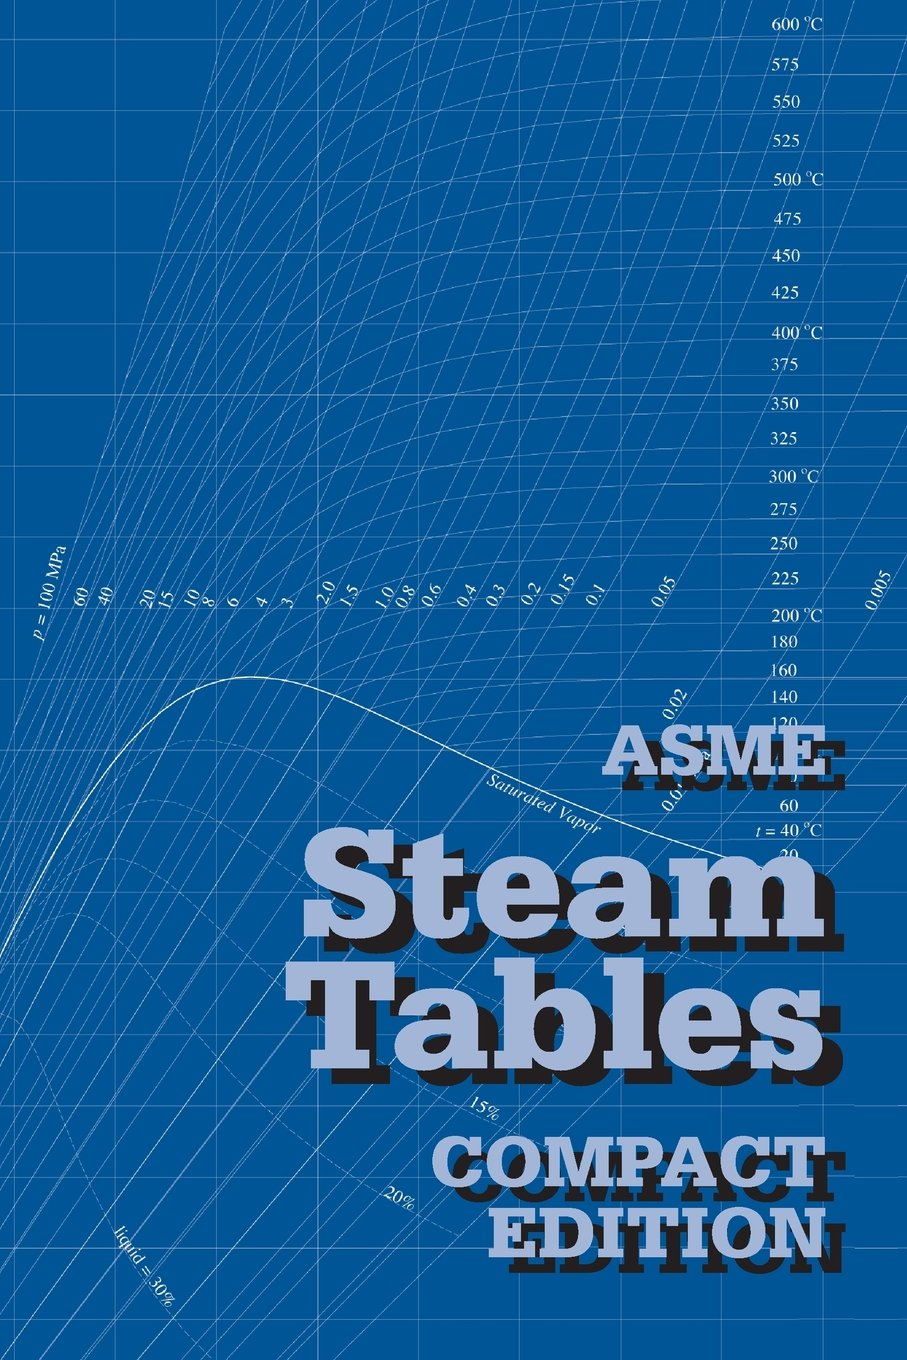 ASME Steam Tables Compact Crtd